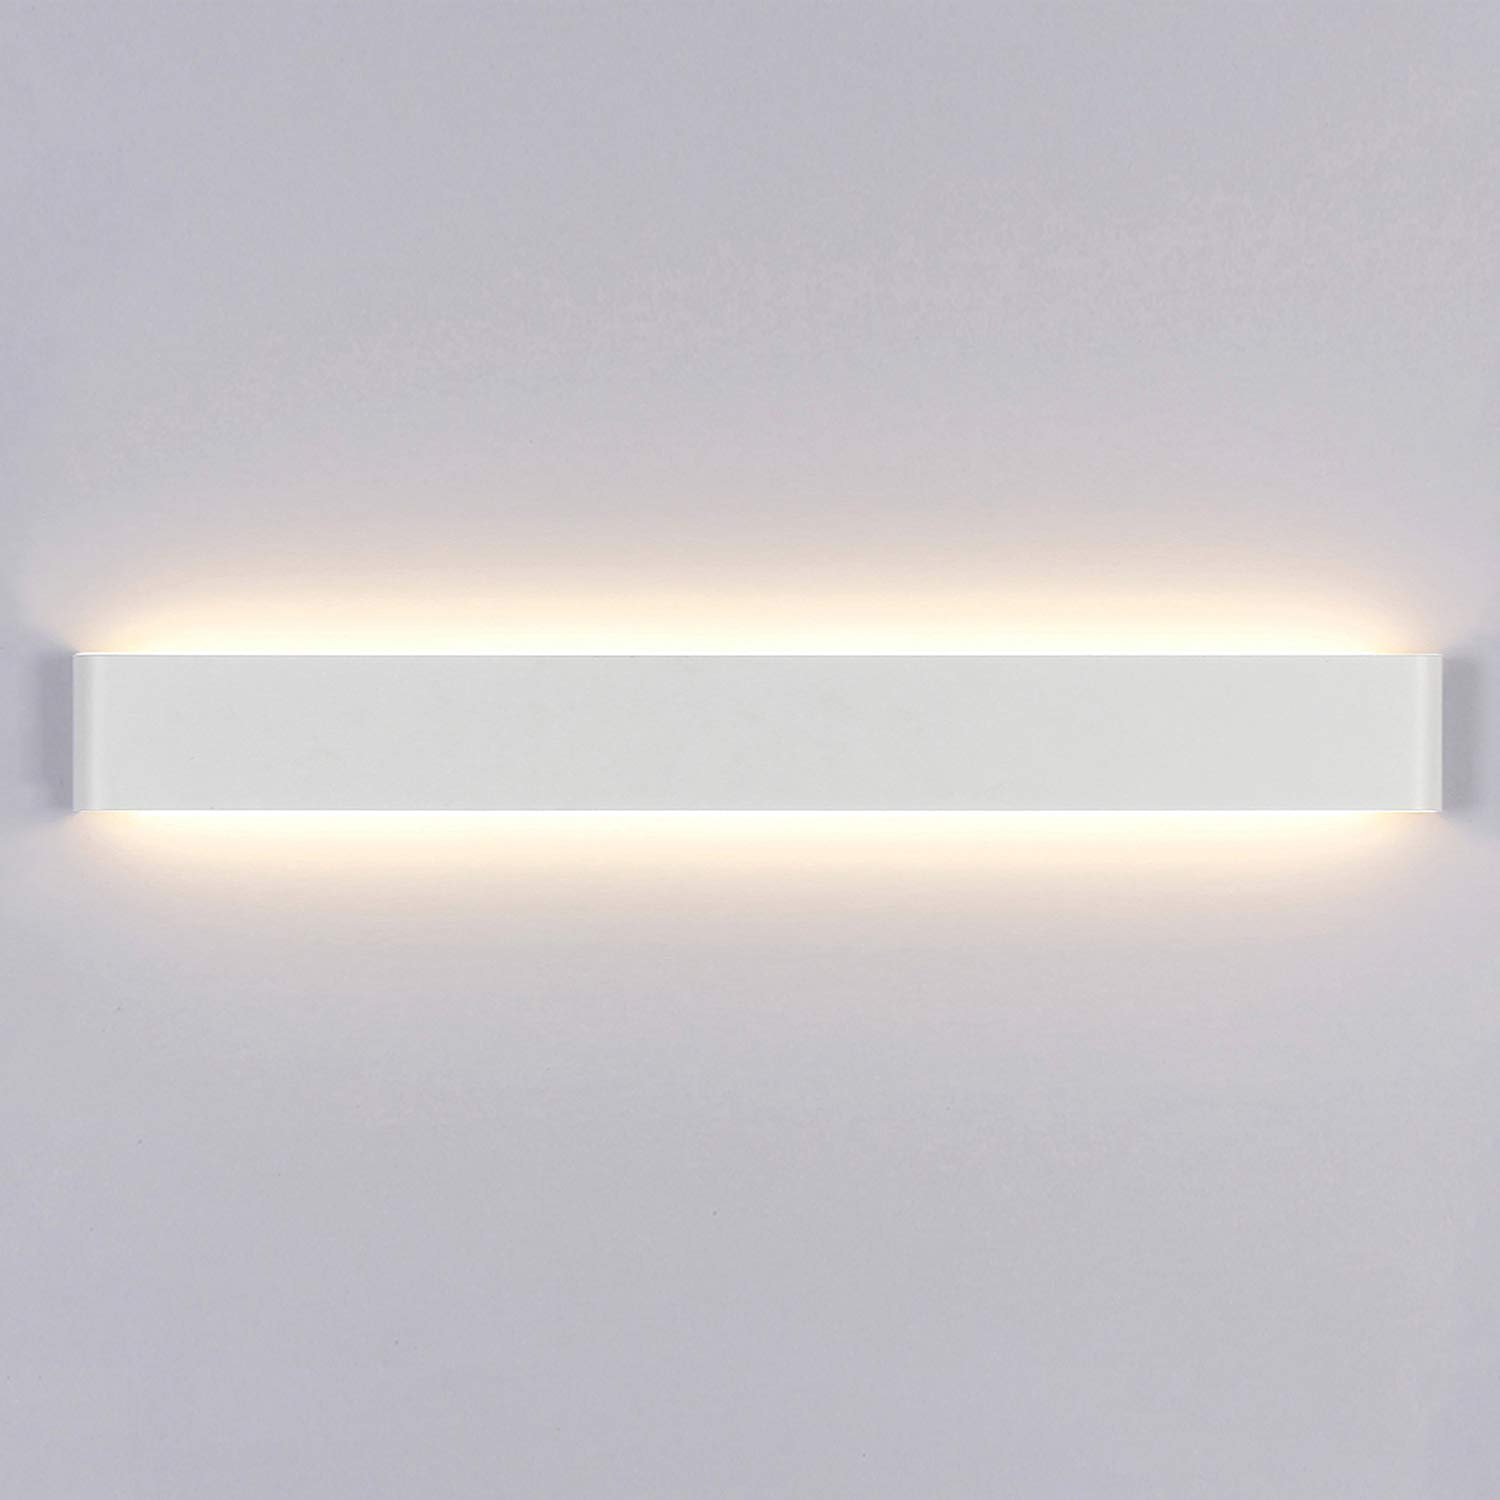 Yafido Aplique Pared Interior LED 90CM Lámpara de pared 30W 3000K Blanco Cálido para Salon Dormitorio Sala Pasillo Escalera AC 220V: Amazon.es: Iluminación